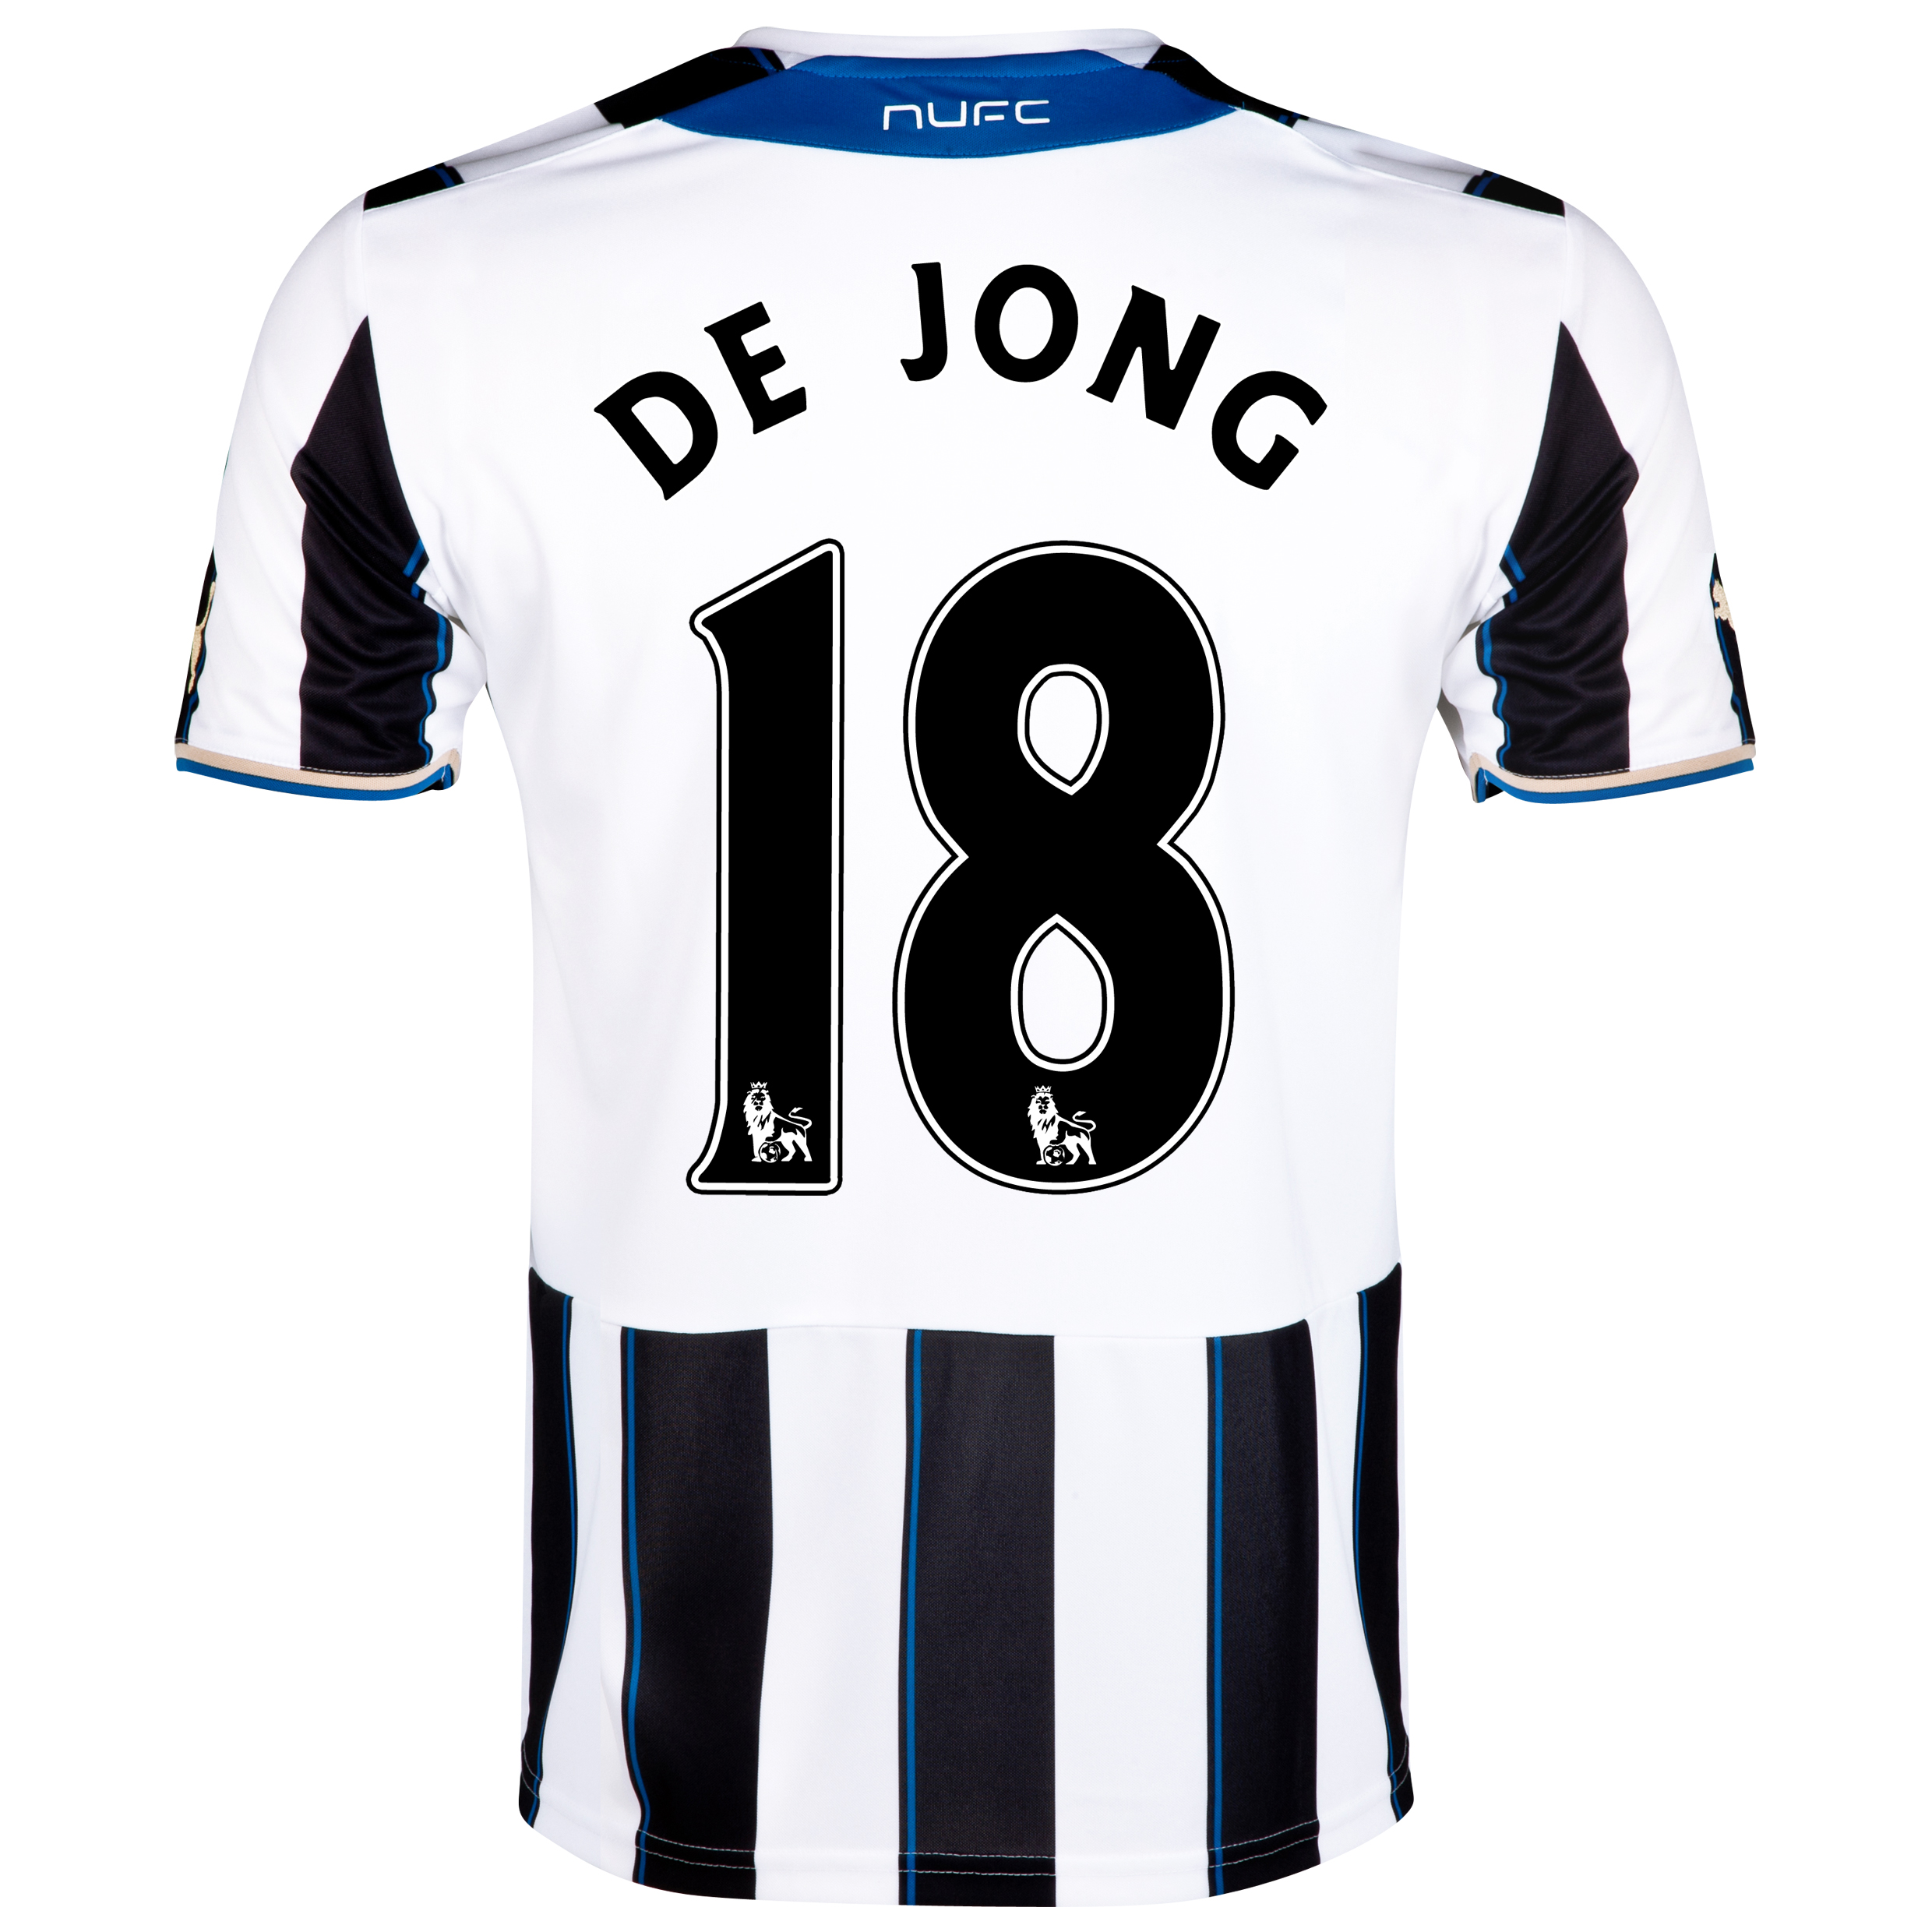 Newcastle United Home Shirt 2013/14 - Outsize with De Jong 18 printing